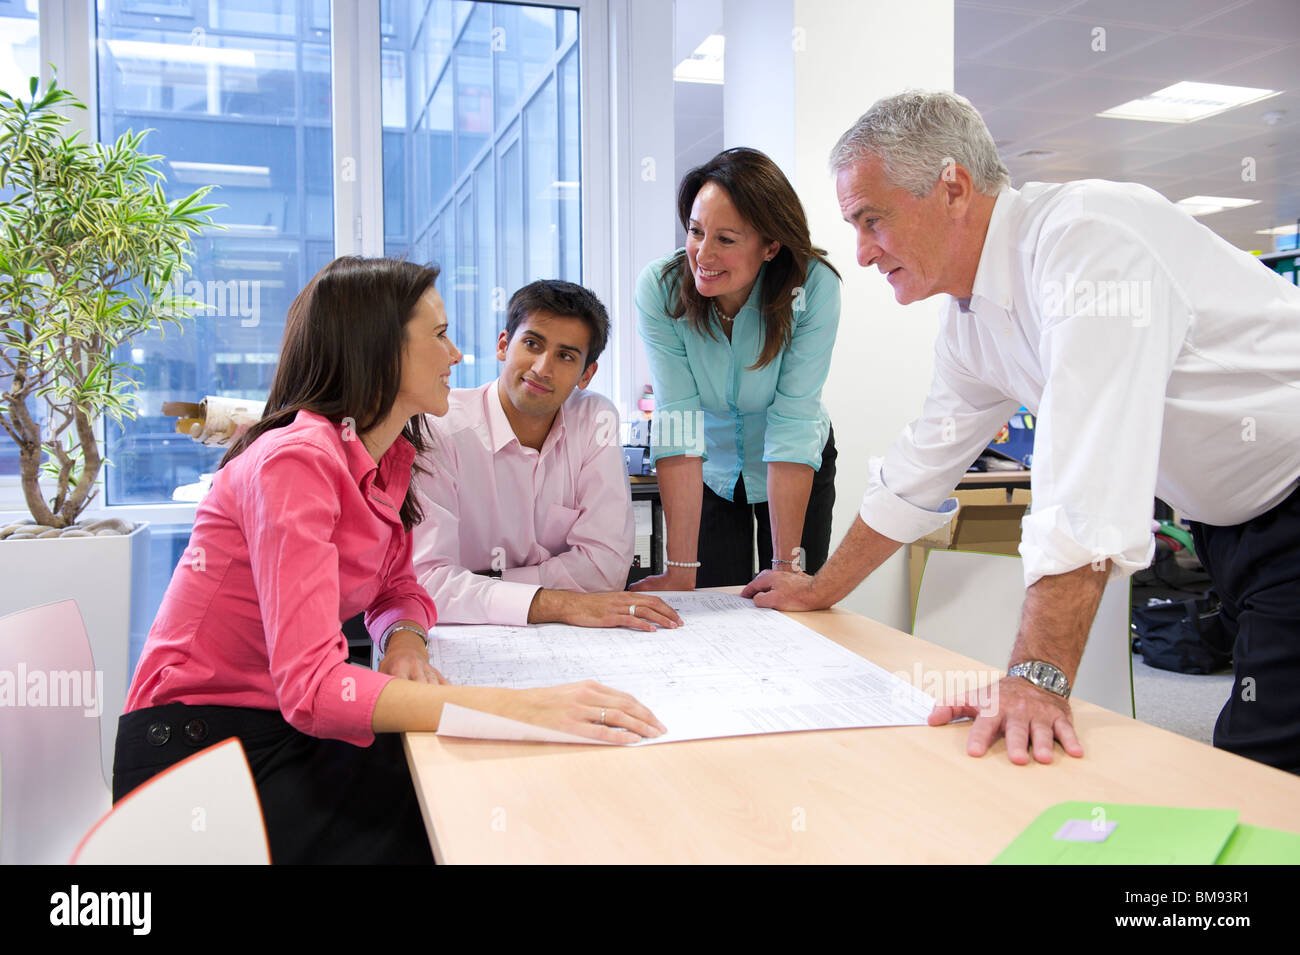 Team meeting to discuss plan drawings at architects office - Stock Image